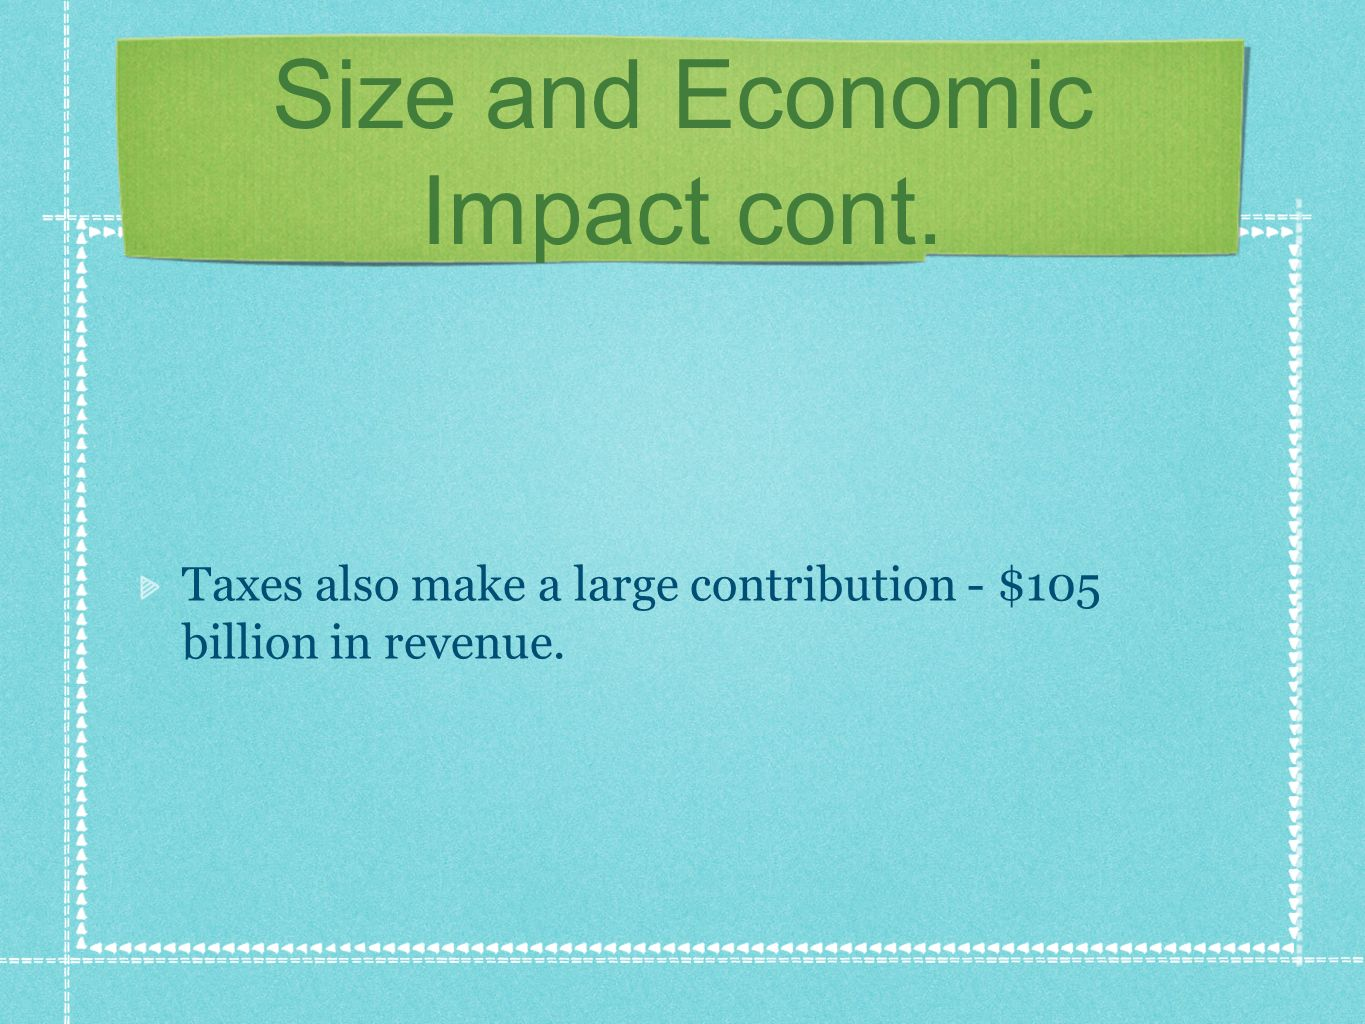 Size and Economic Impact cont. Taxes also make a large contribution - $105 billion in revenue.